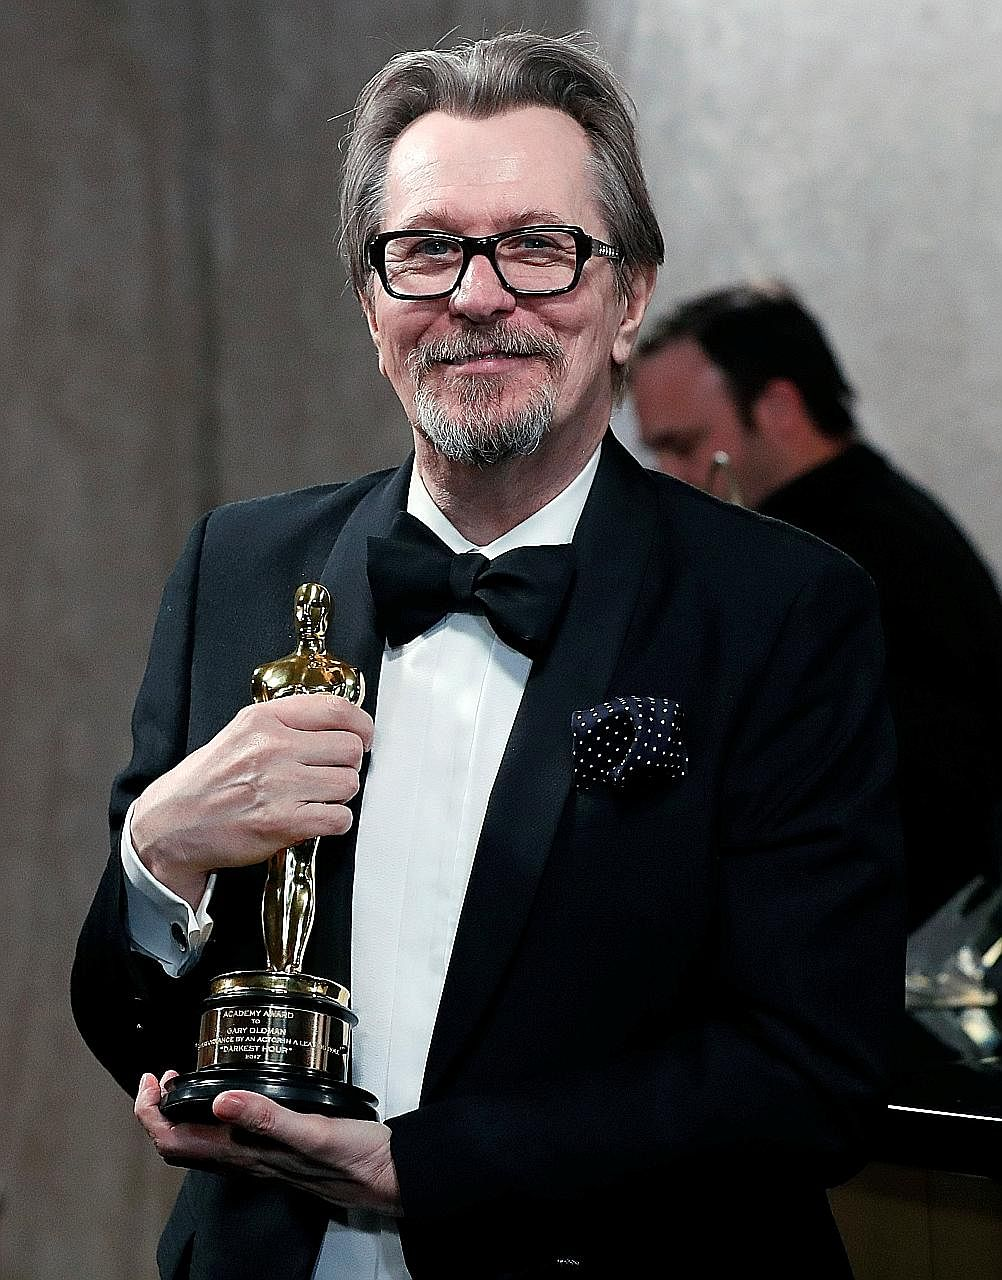 Gary Oldman won the Best Actor award for playing the late British prime minister Winston Churchill in Darkest Hour.